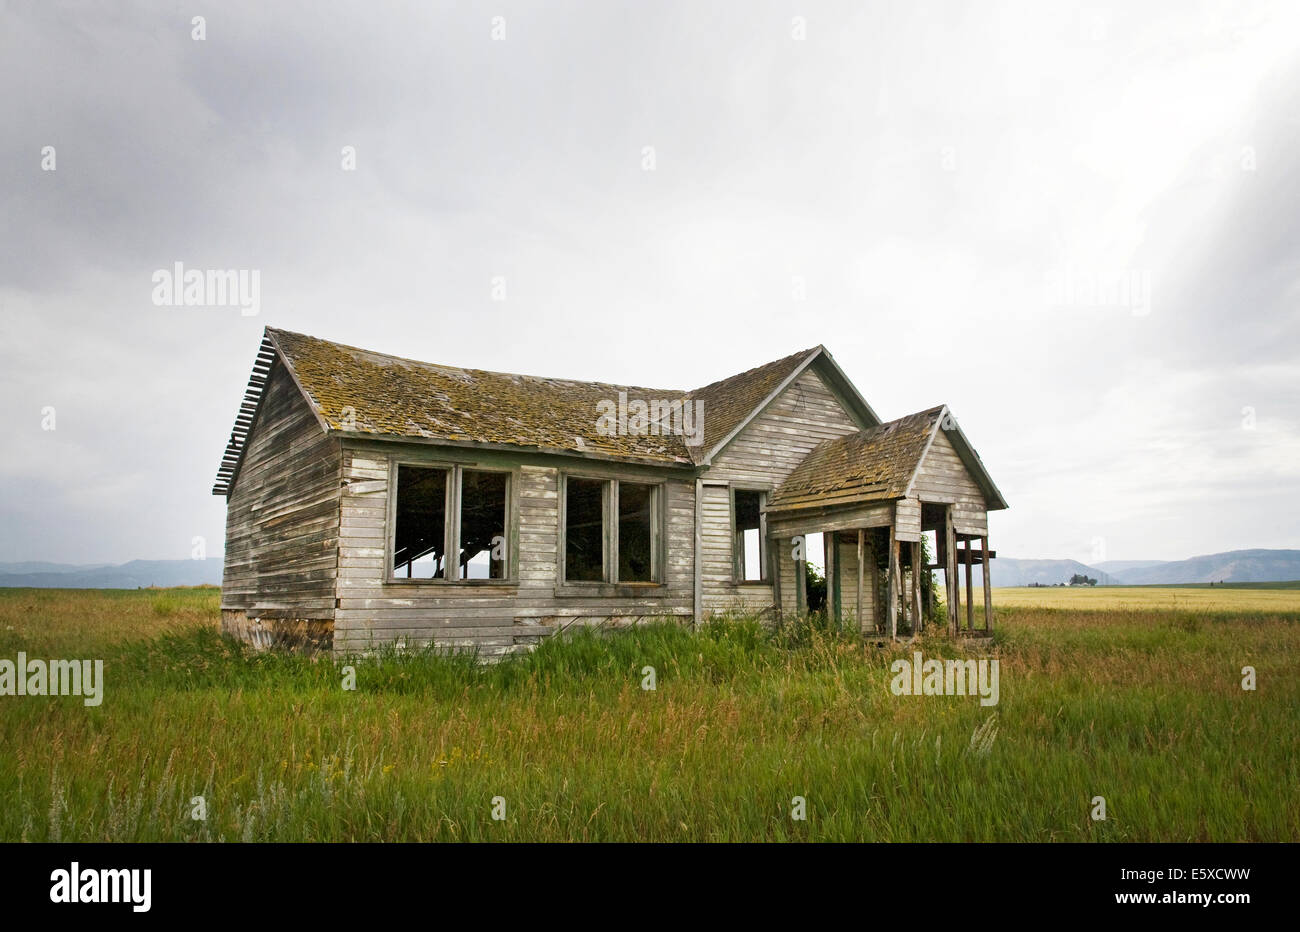 An ancient abandoned farmhouse on a wheat farm in the Swan Valley of eastern Idaho. - Stock Image